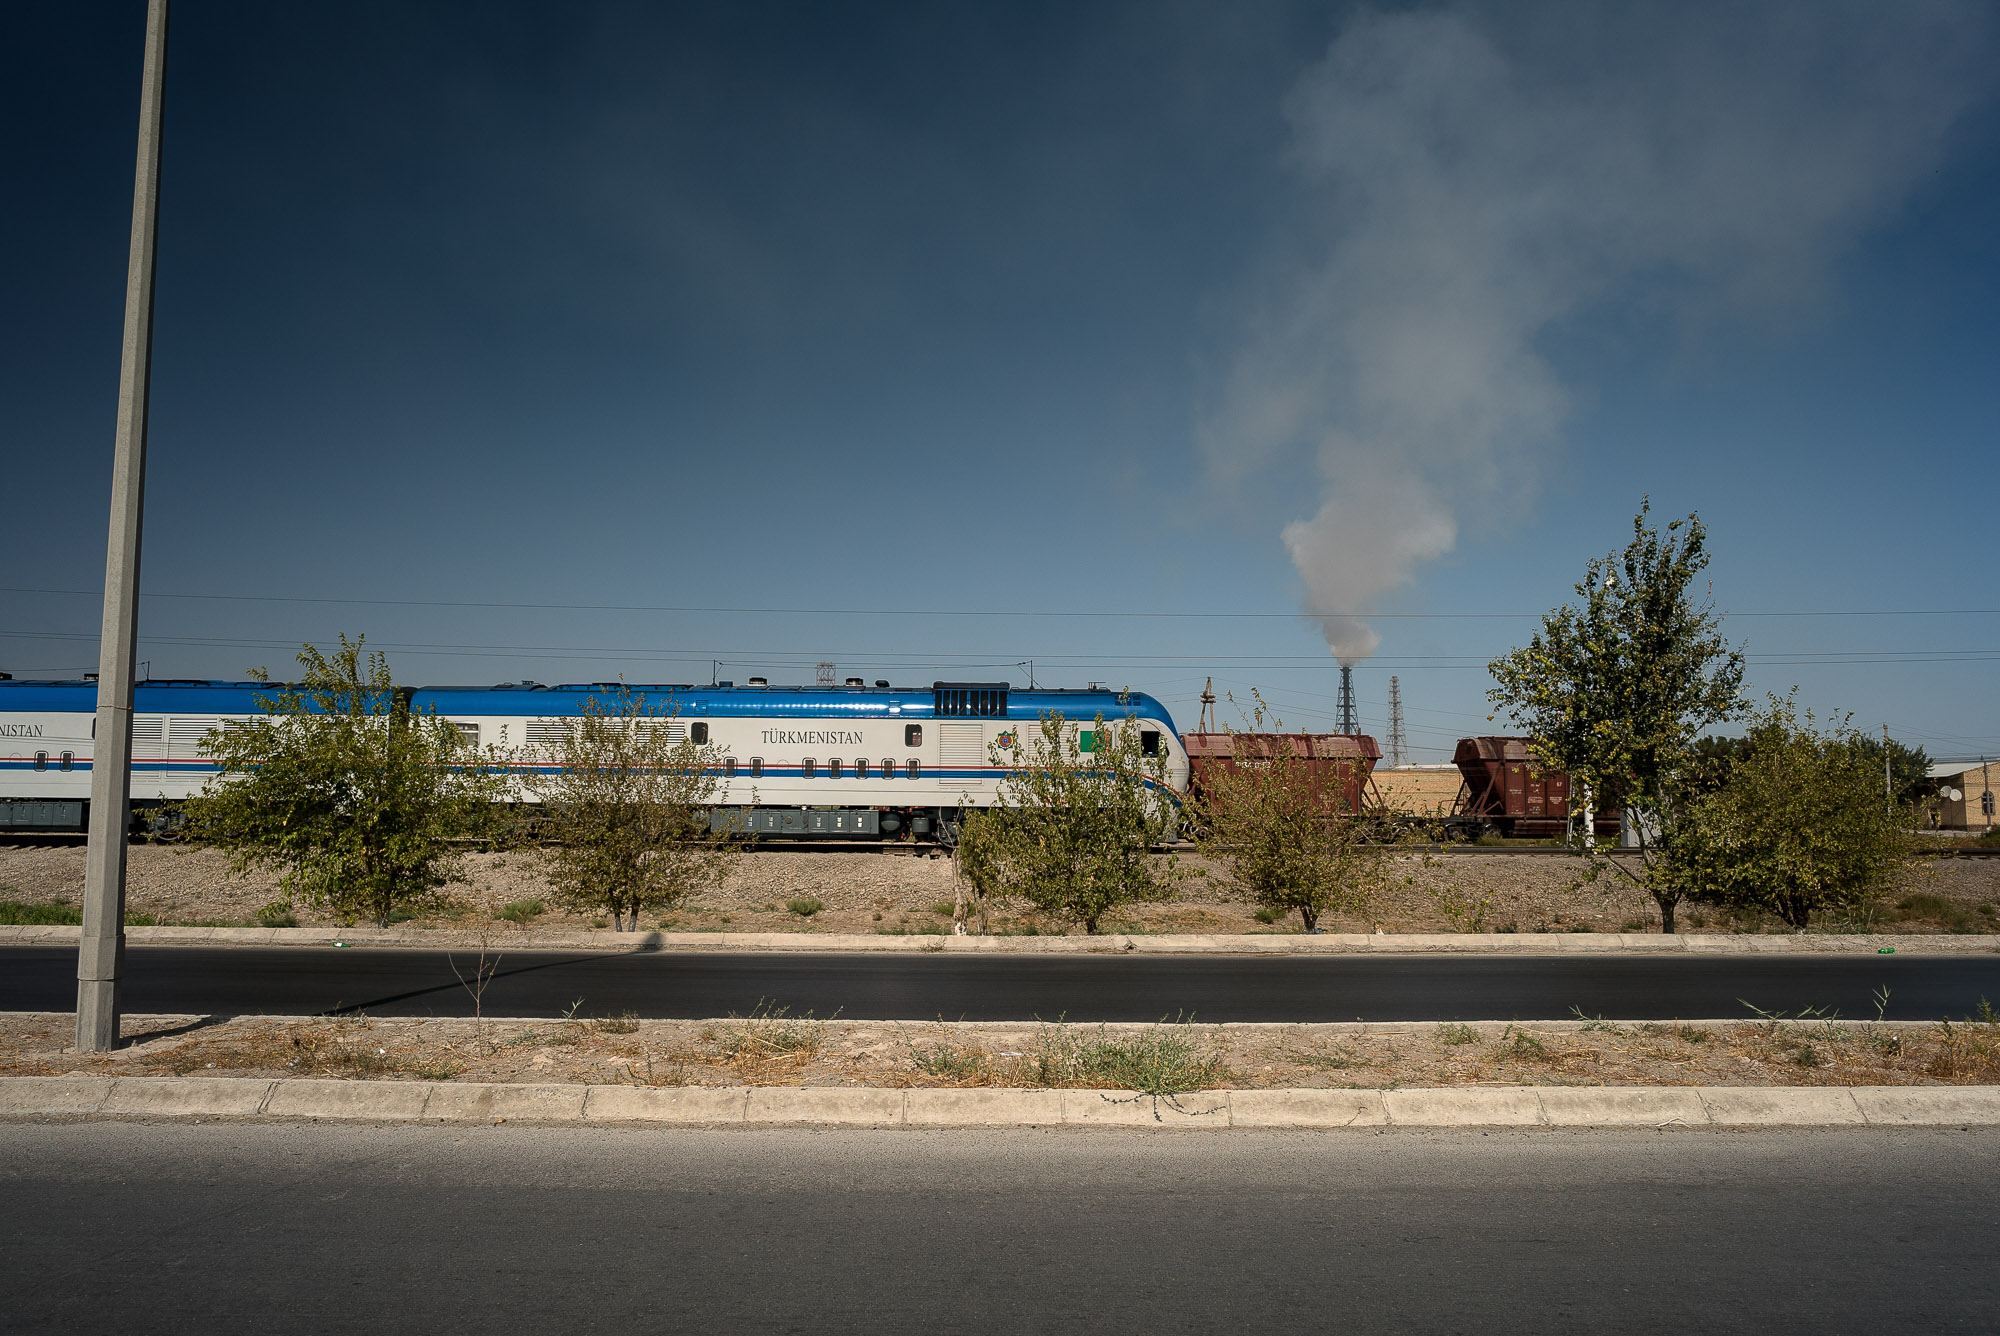 train in Turkmenistan